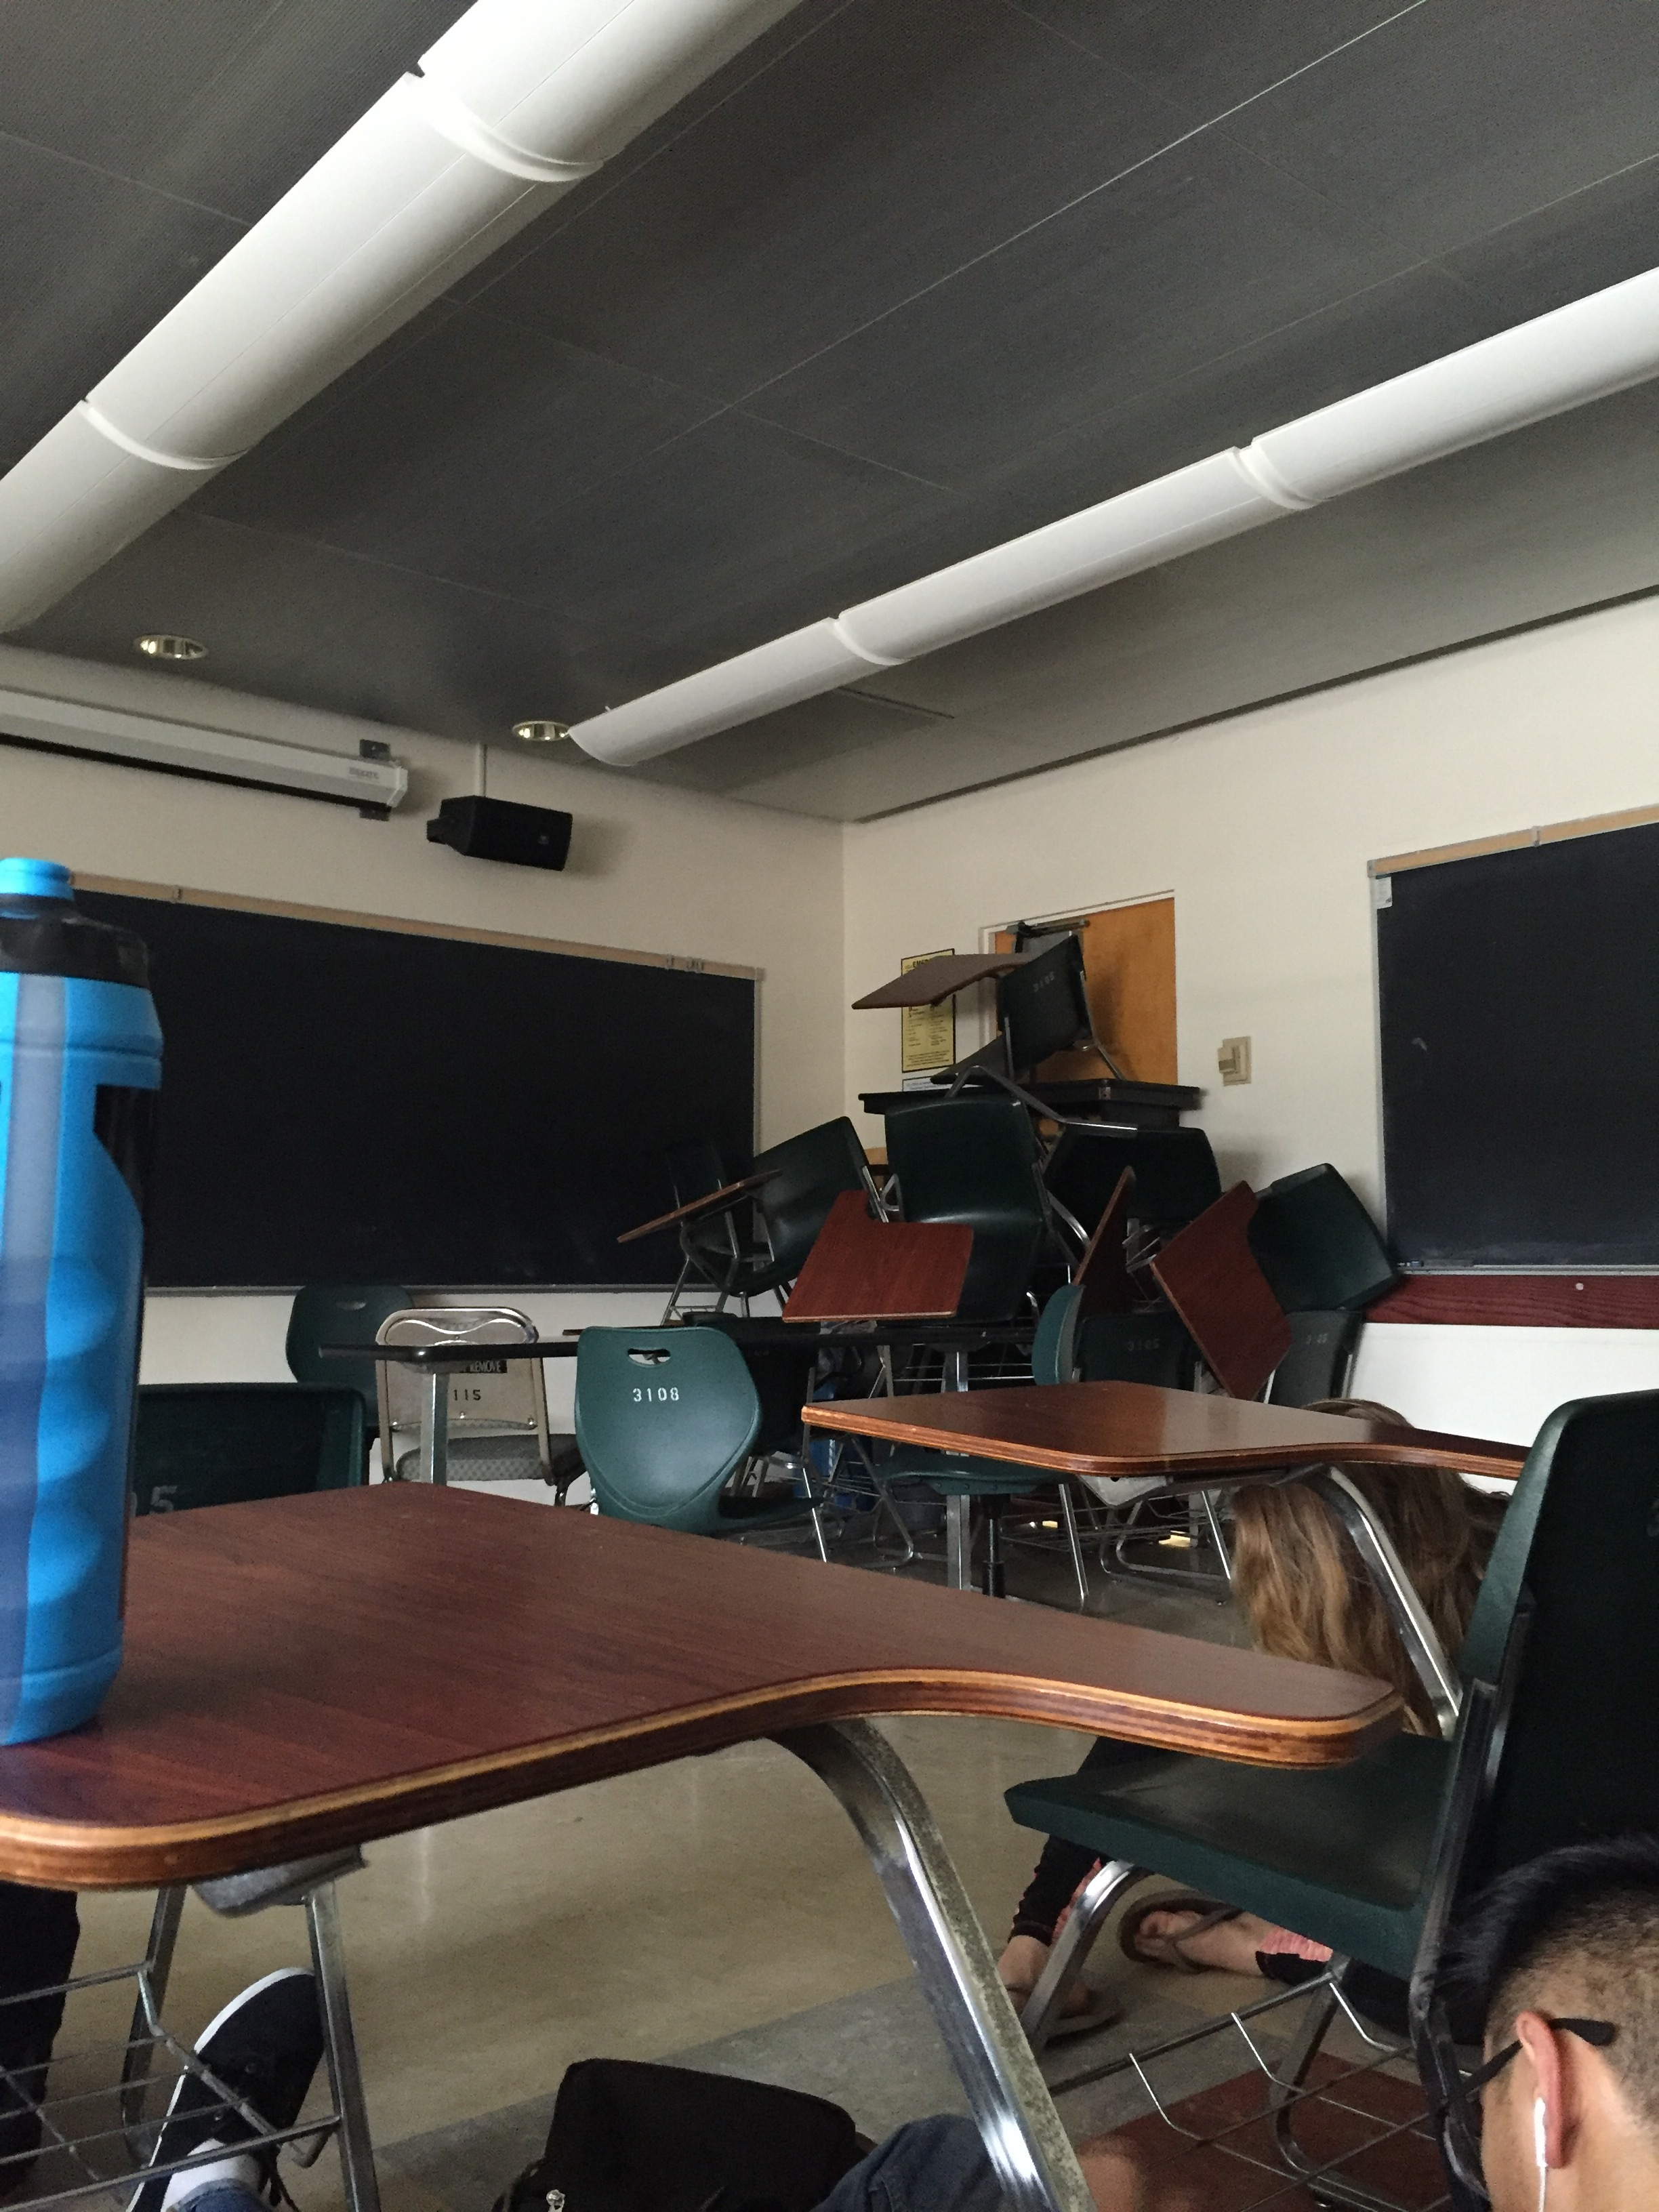 Students barricade themselves in UCLA classrooms